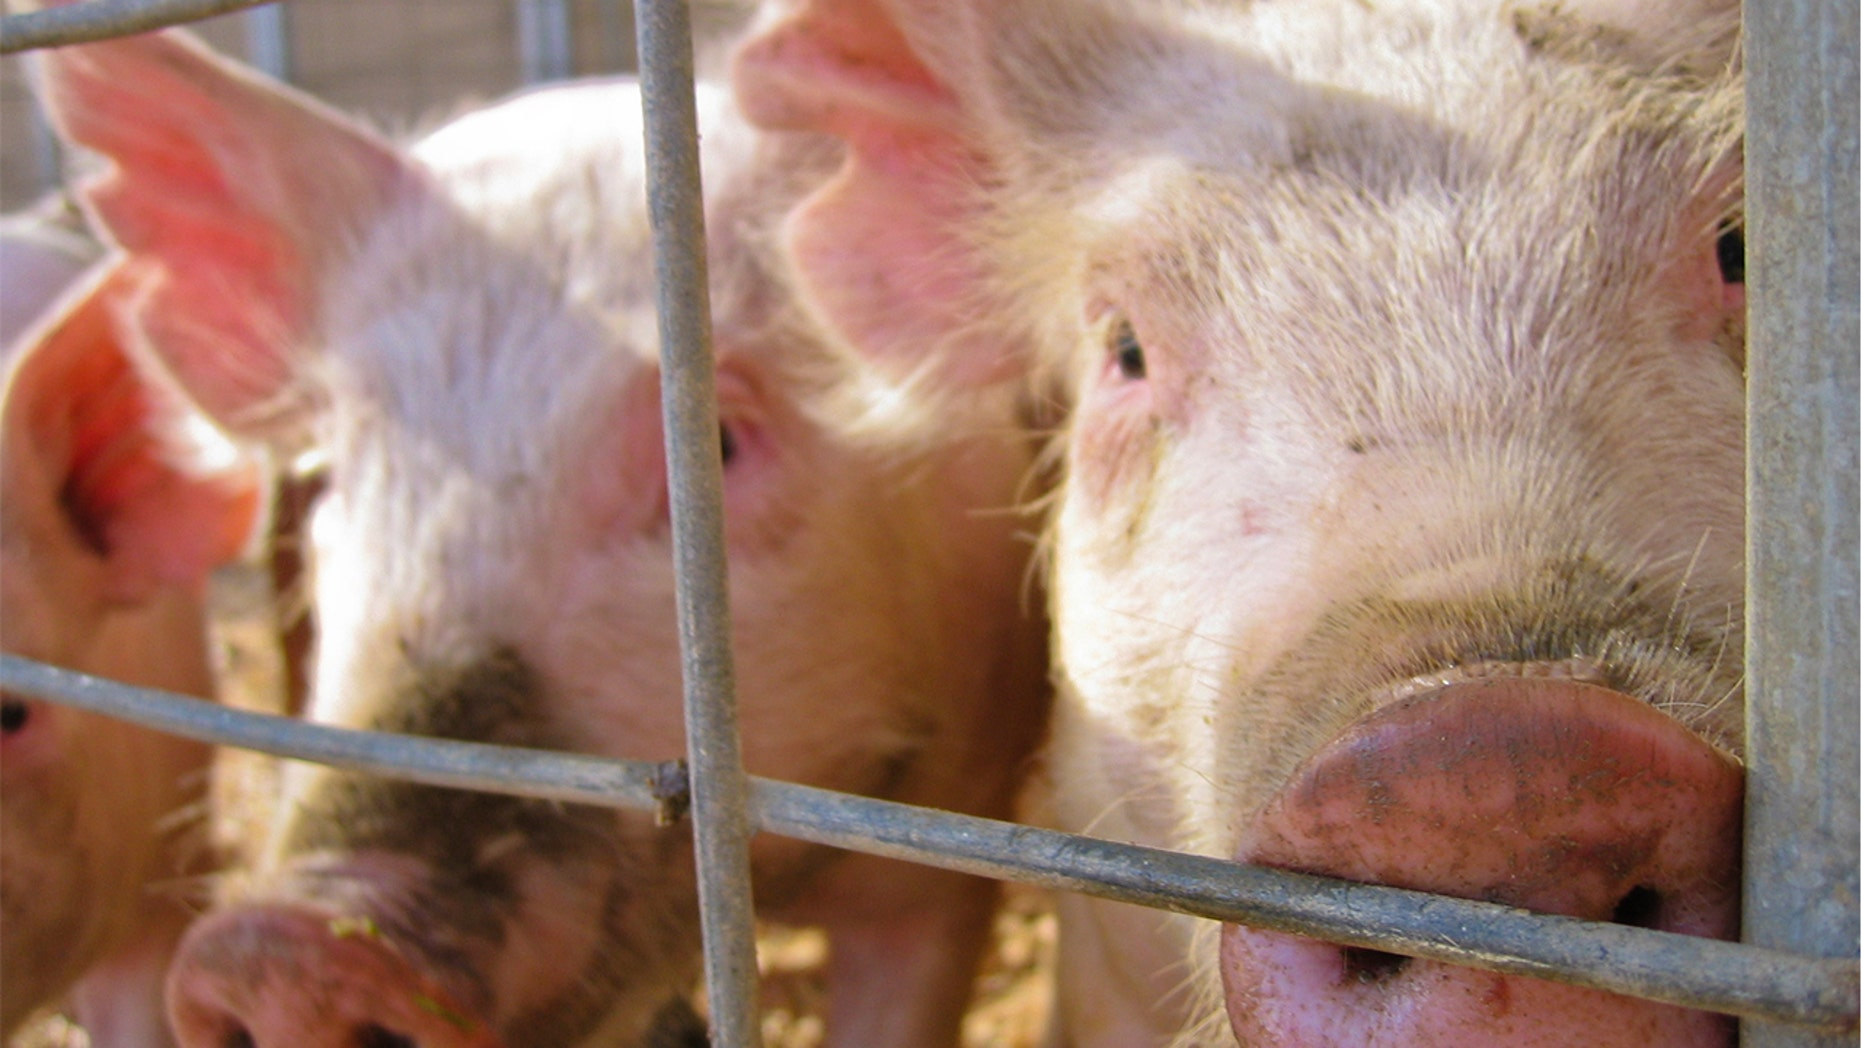 Two children contracted a rare strain of flu after interacting with pigs at a Michigan county fair.